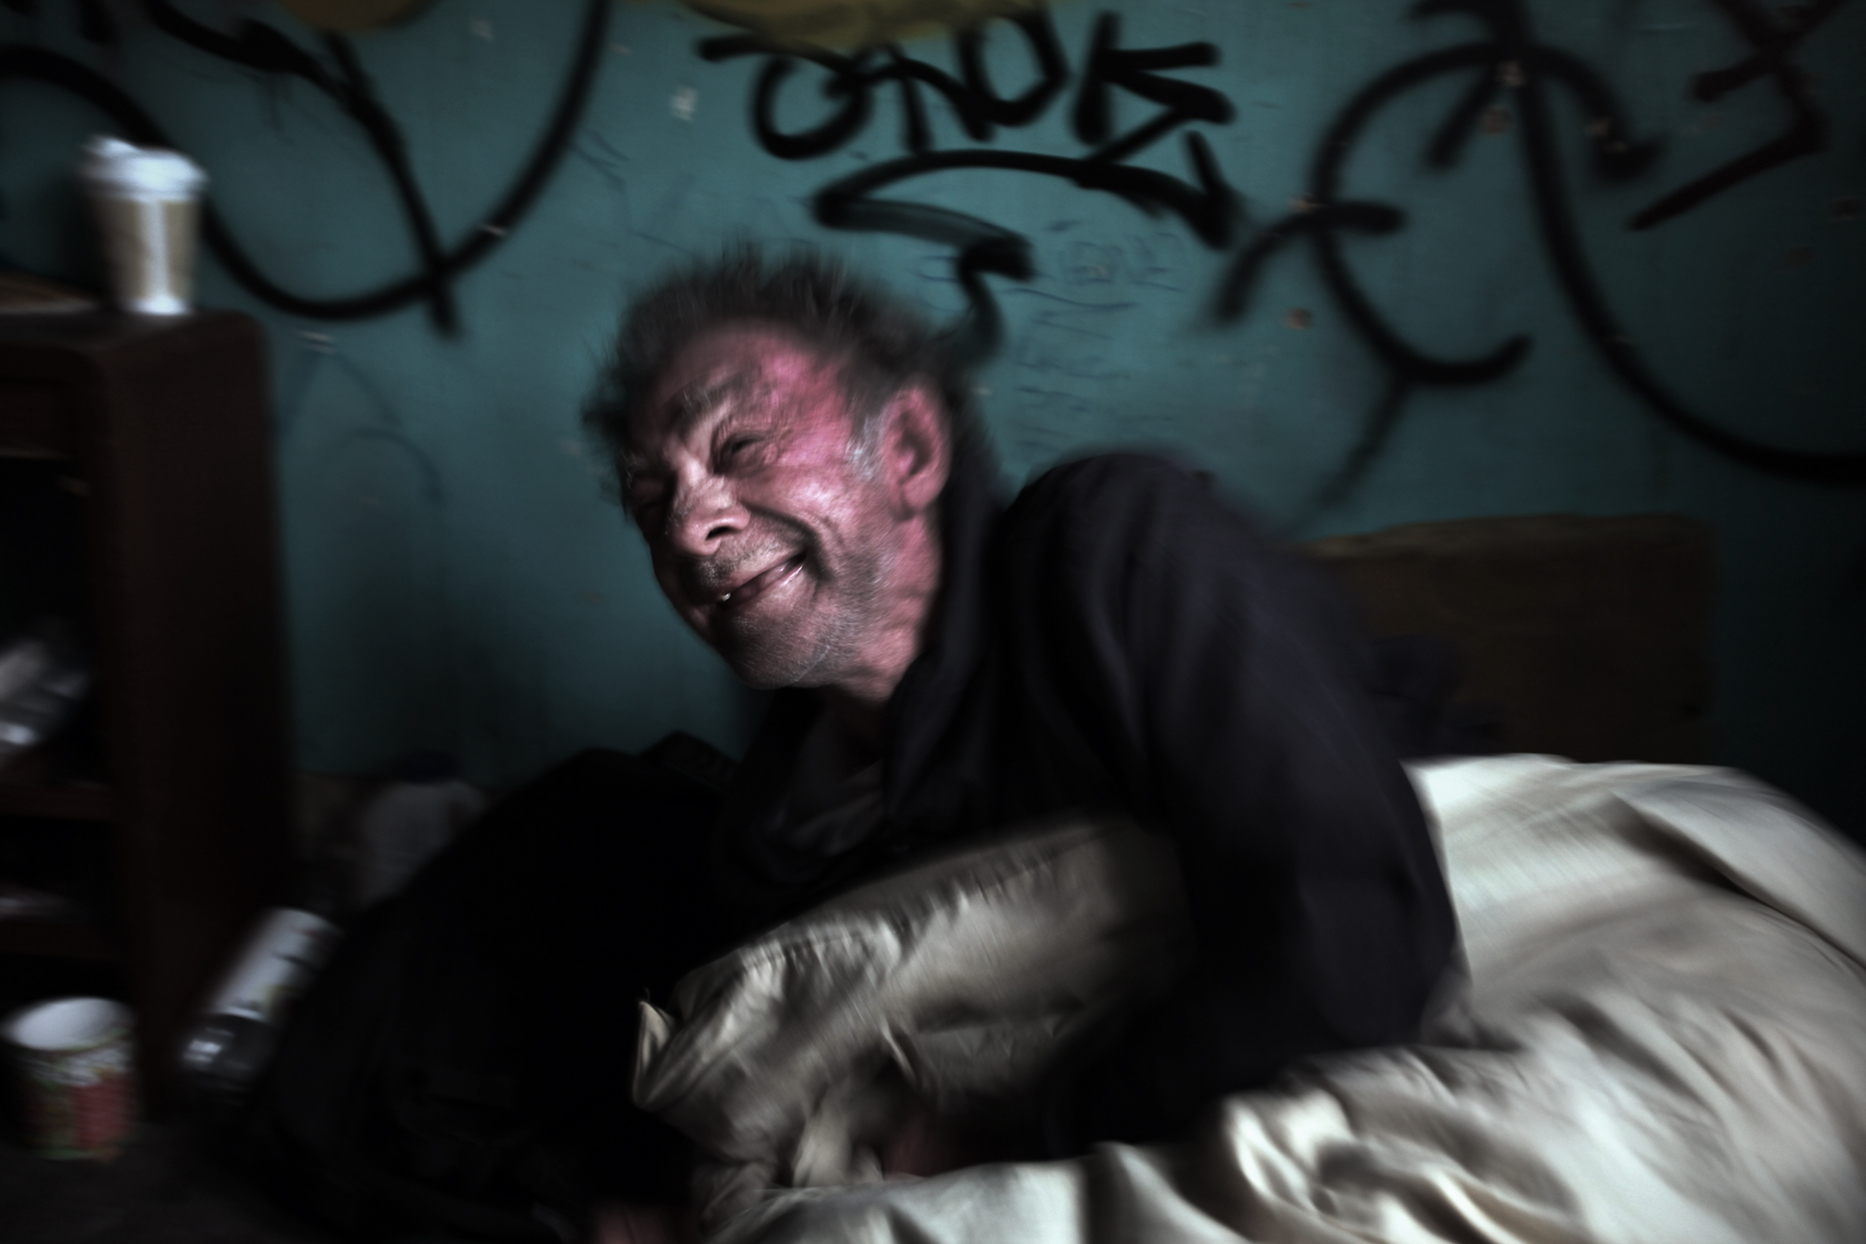 Dennis has been an alcoholic and homeless for an astonishing thirty-five years.